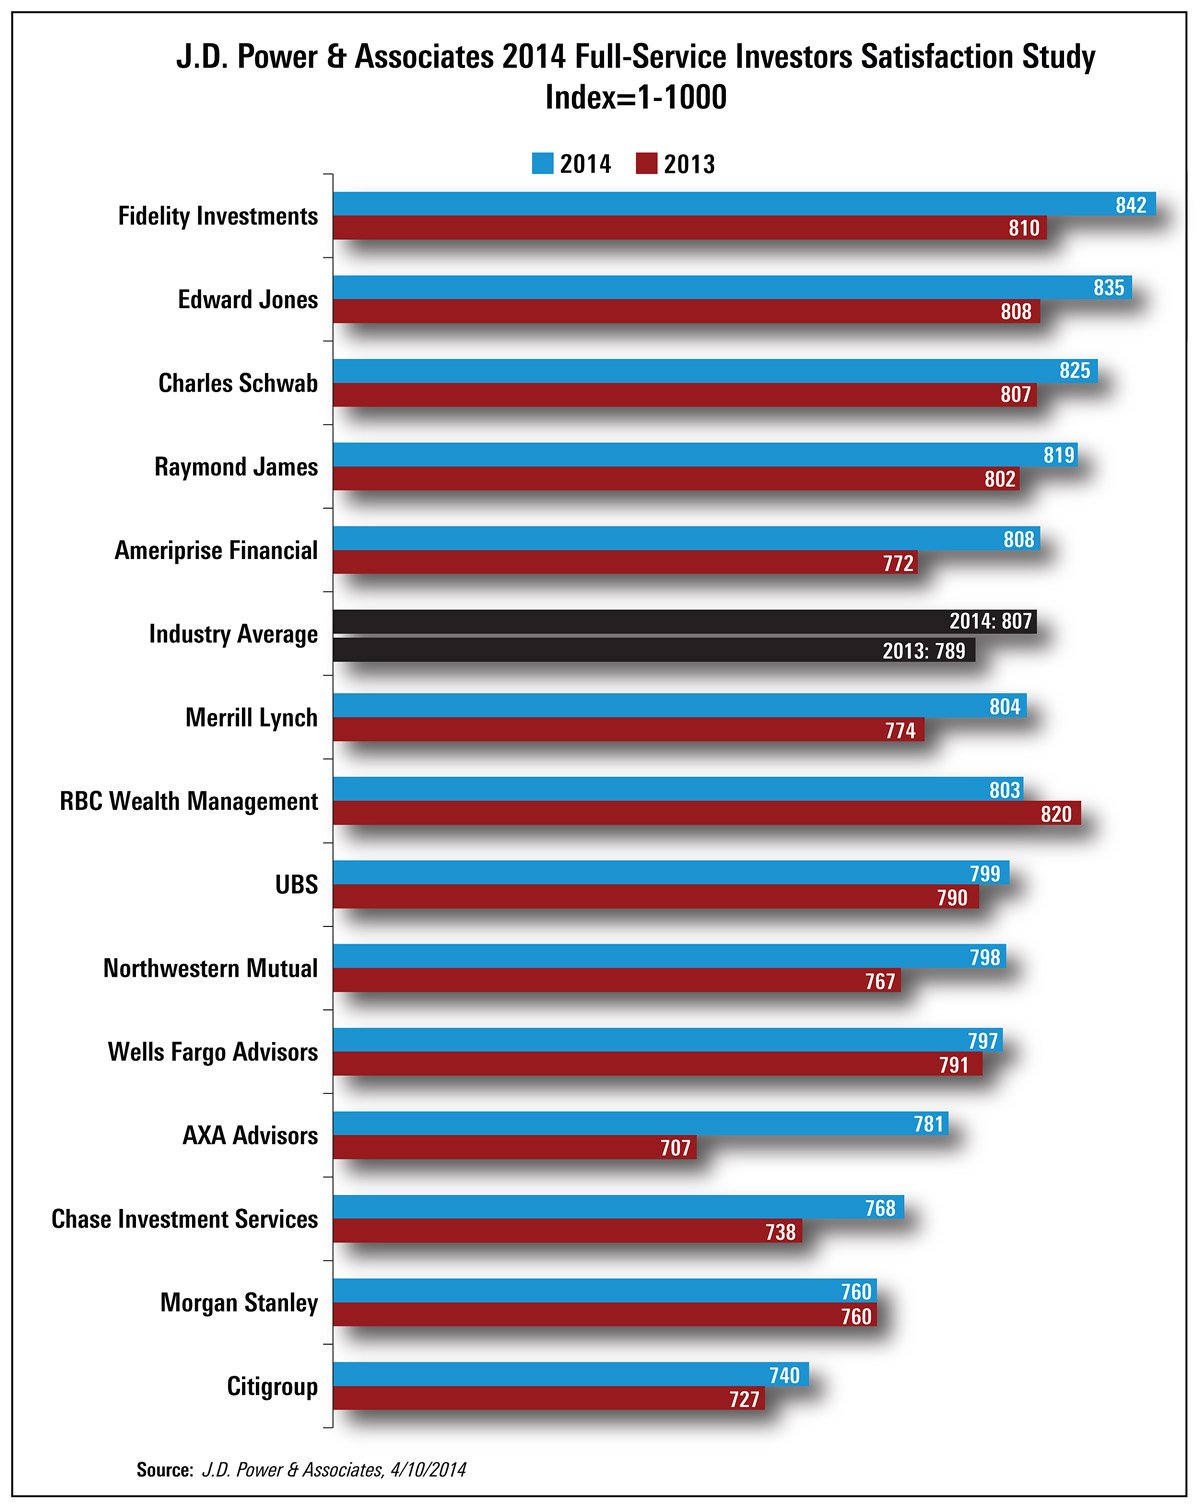 J.D. Power Rankings: Top Full-Service Firms for Investor Satisfation. Source: J.D. Power & Associates